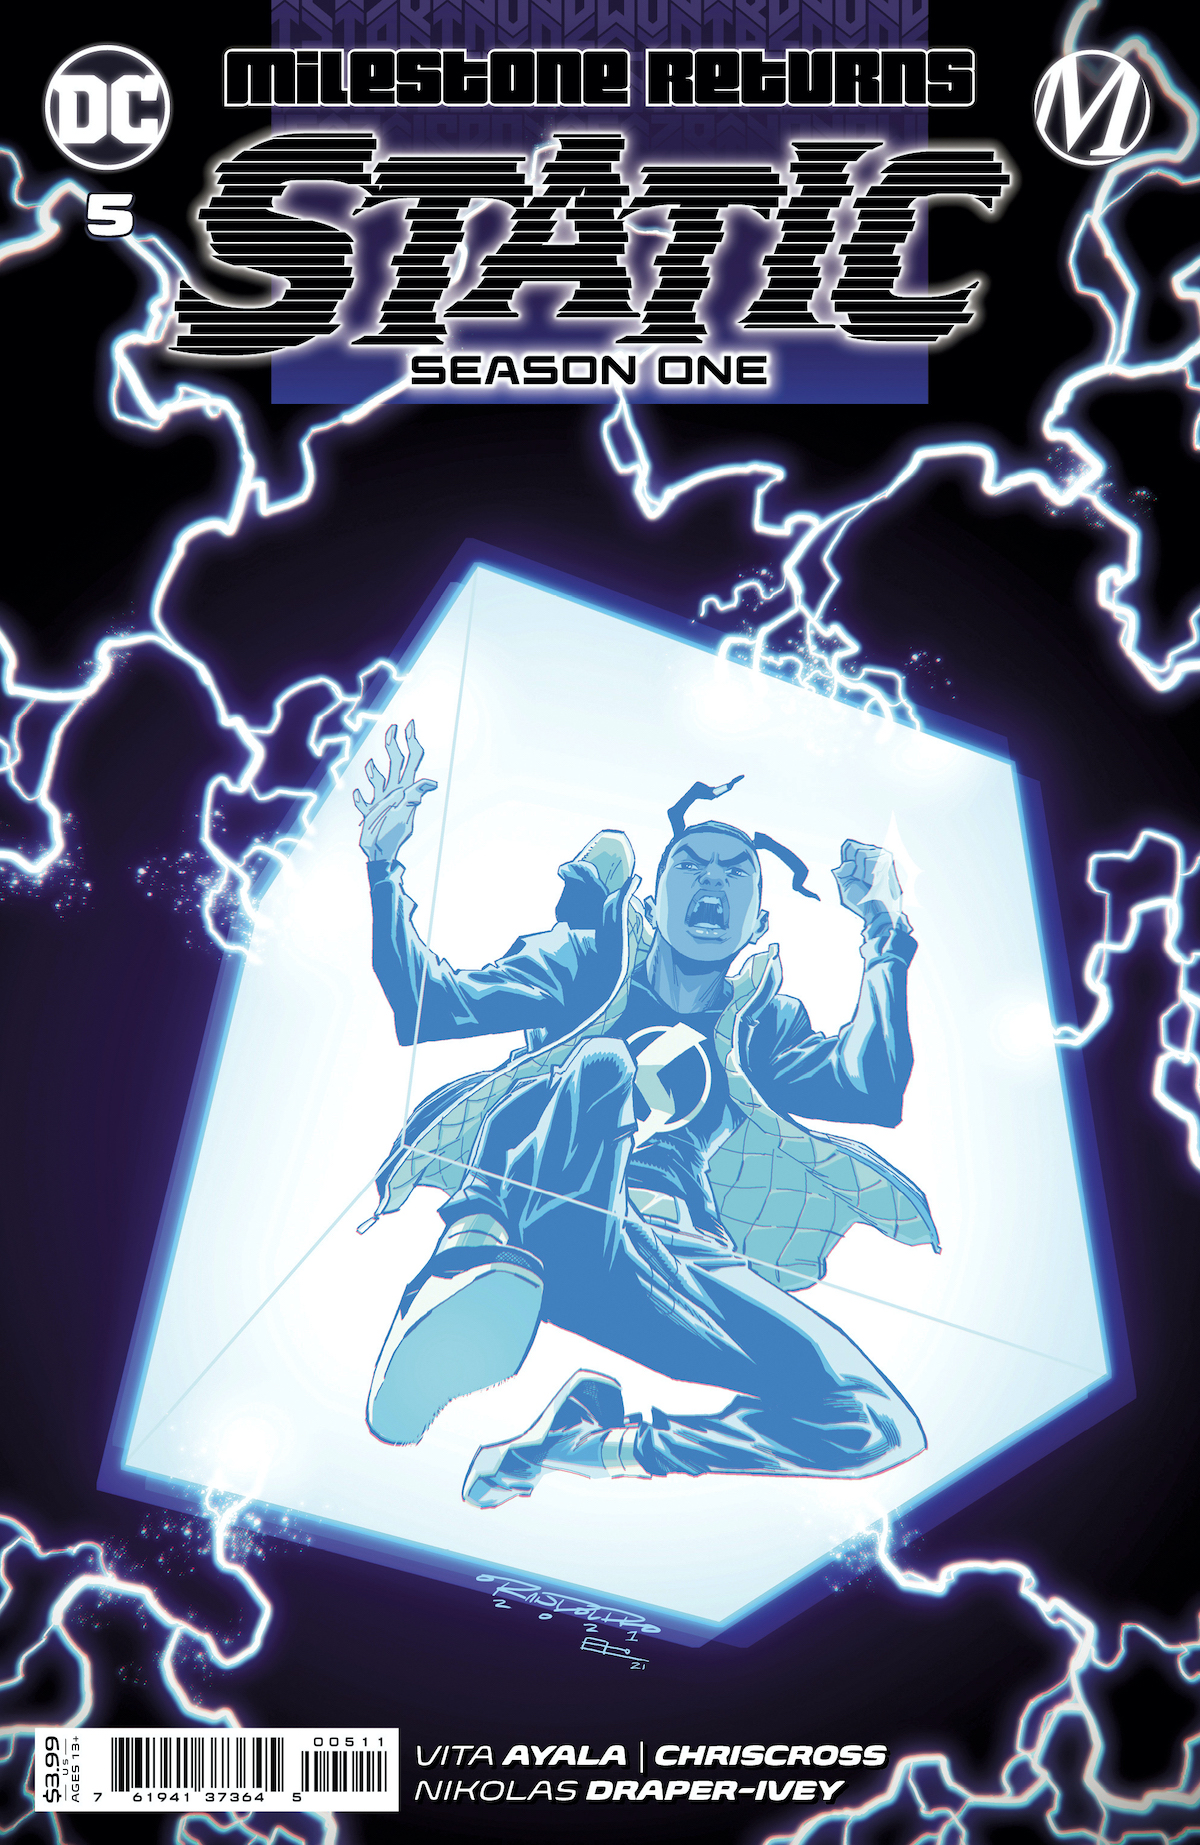 STATIC S1 Cv5 00511 Recent Comic Cover Updates For The Week Ending 2021 07 23